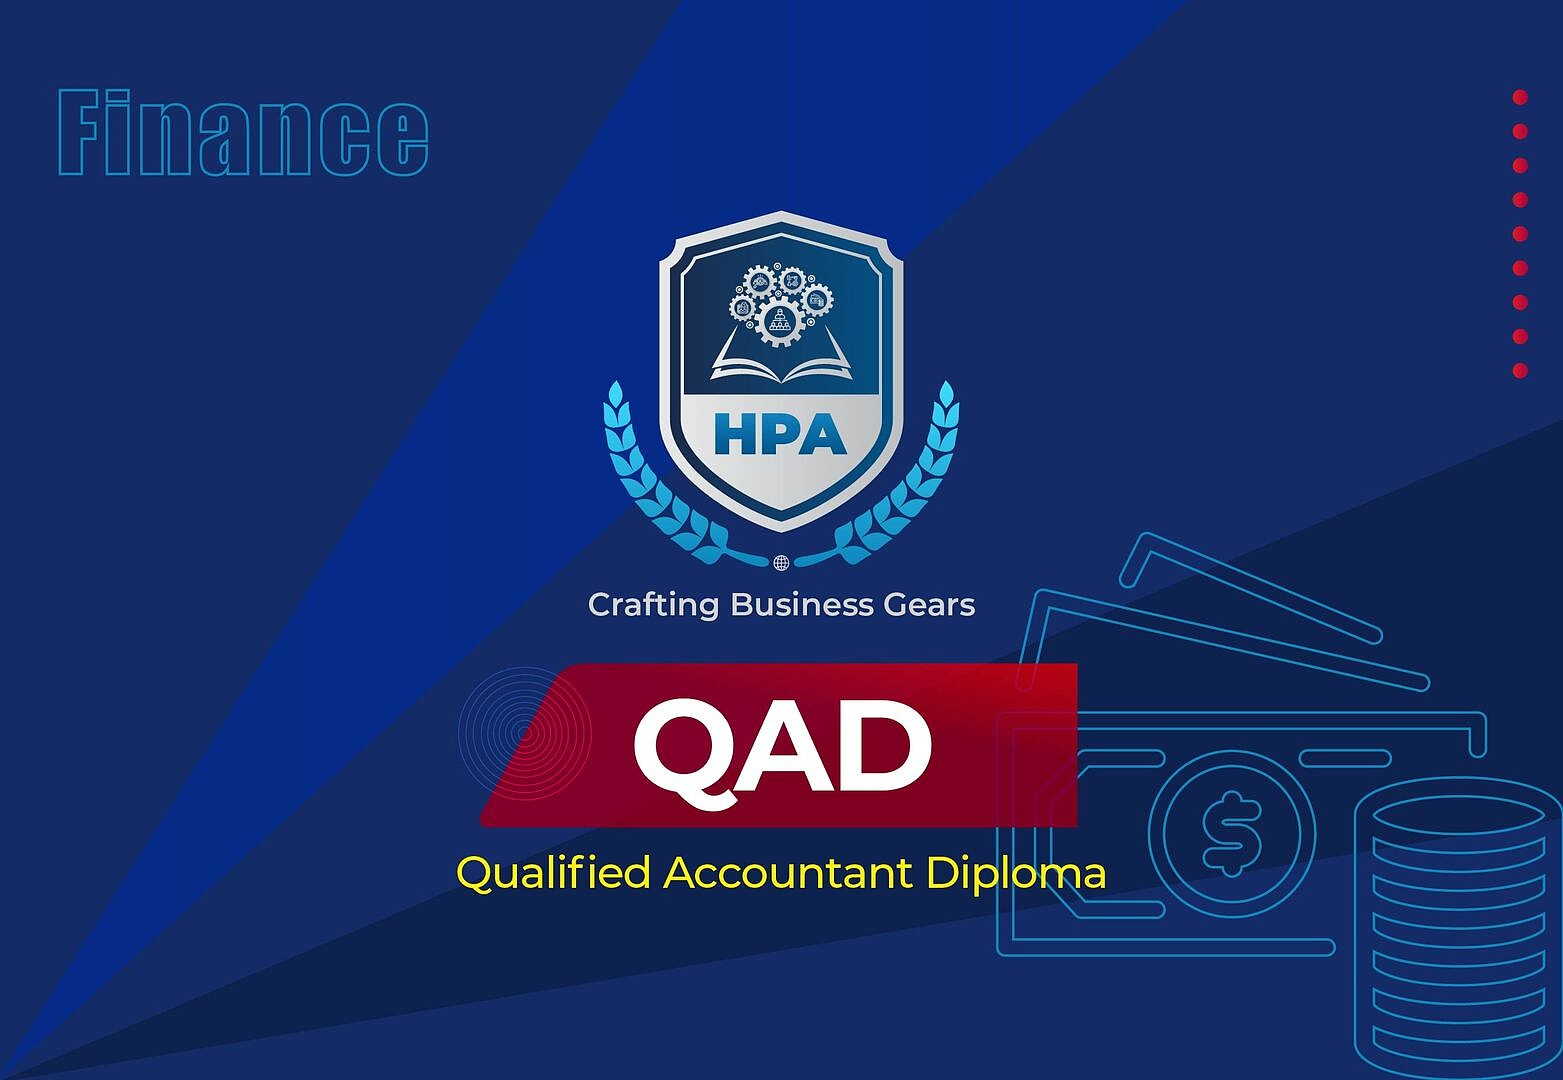 Qualified Accountant Diploma